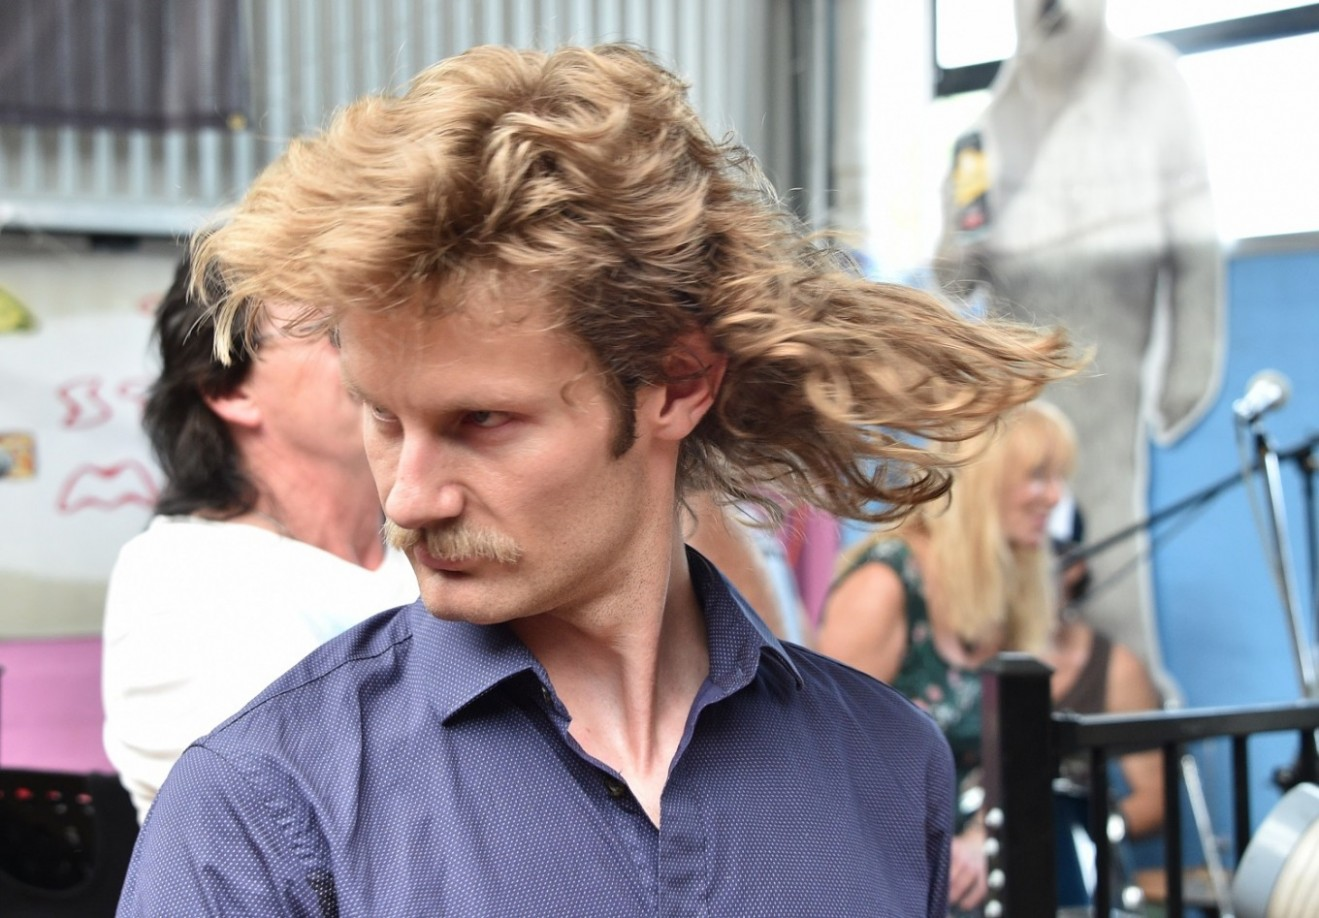 Hair To Stay: Australia Mullet Heads Celebrate Hairstyle Revival A Mullet Hairstyle